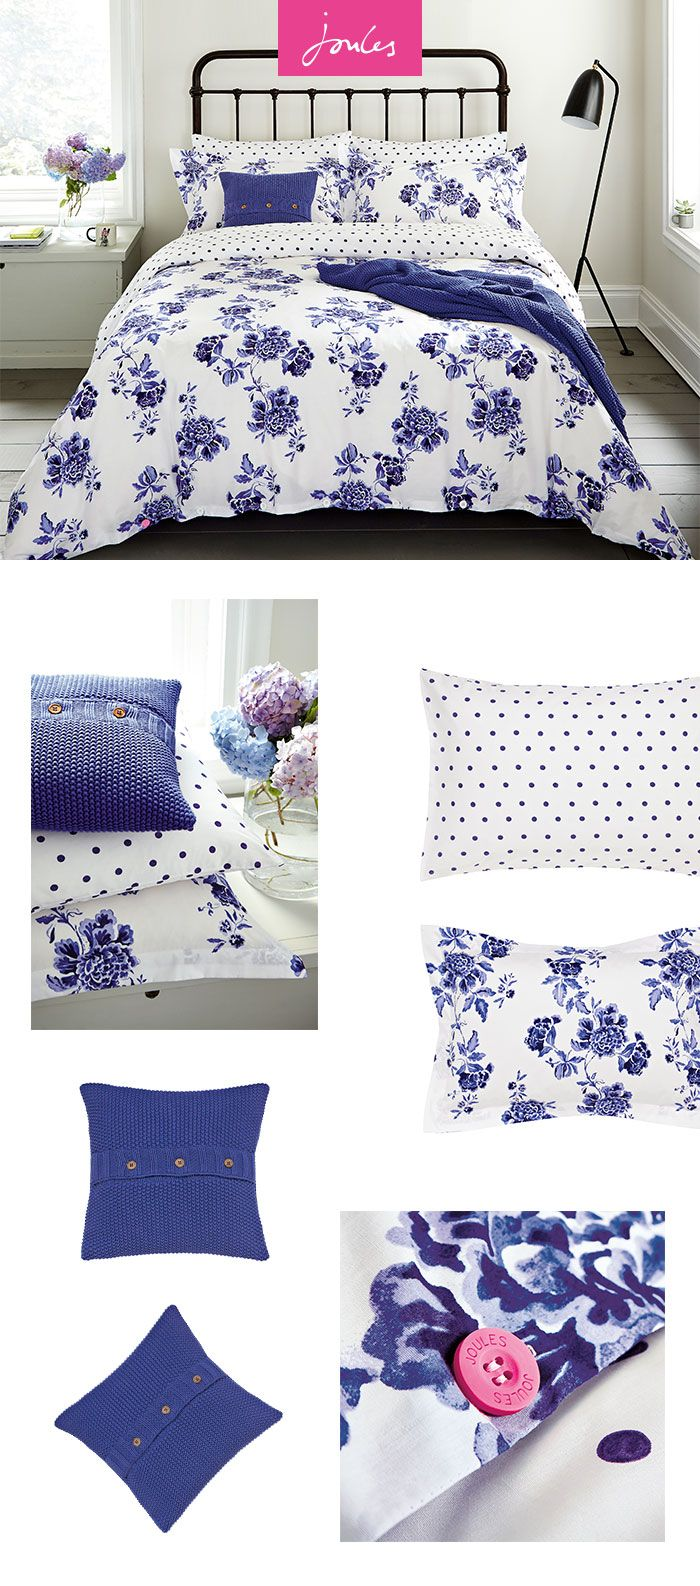 When it comes to brightening up your bedroom, there's no better way to do it than with the latest bedding collection from Joules.